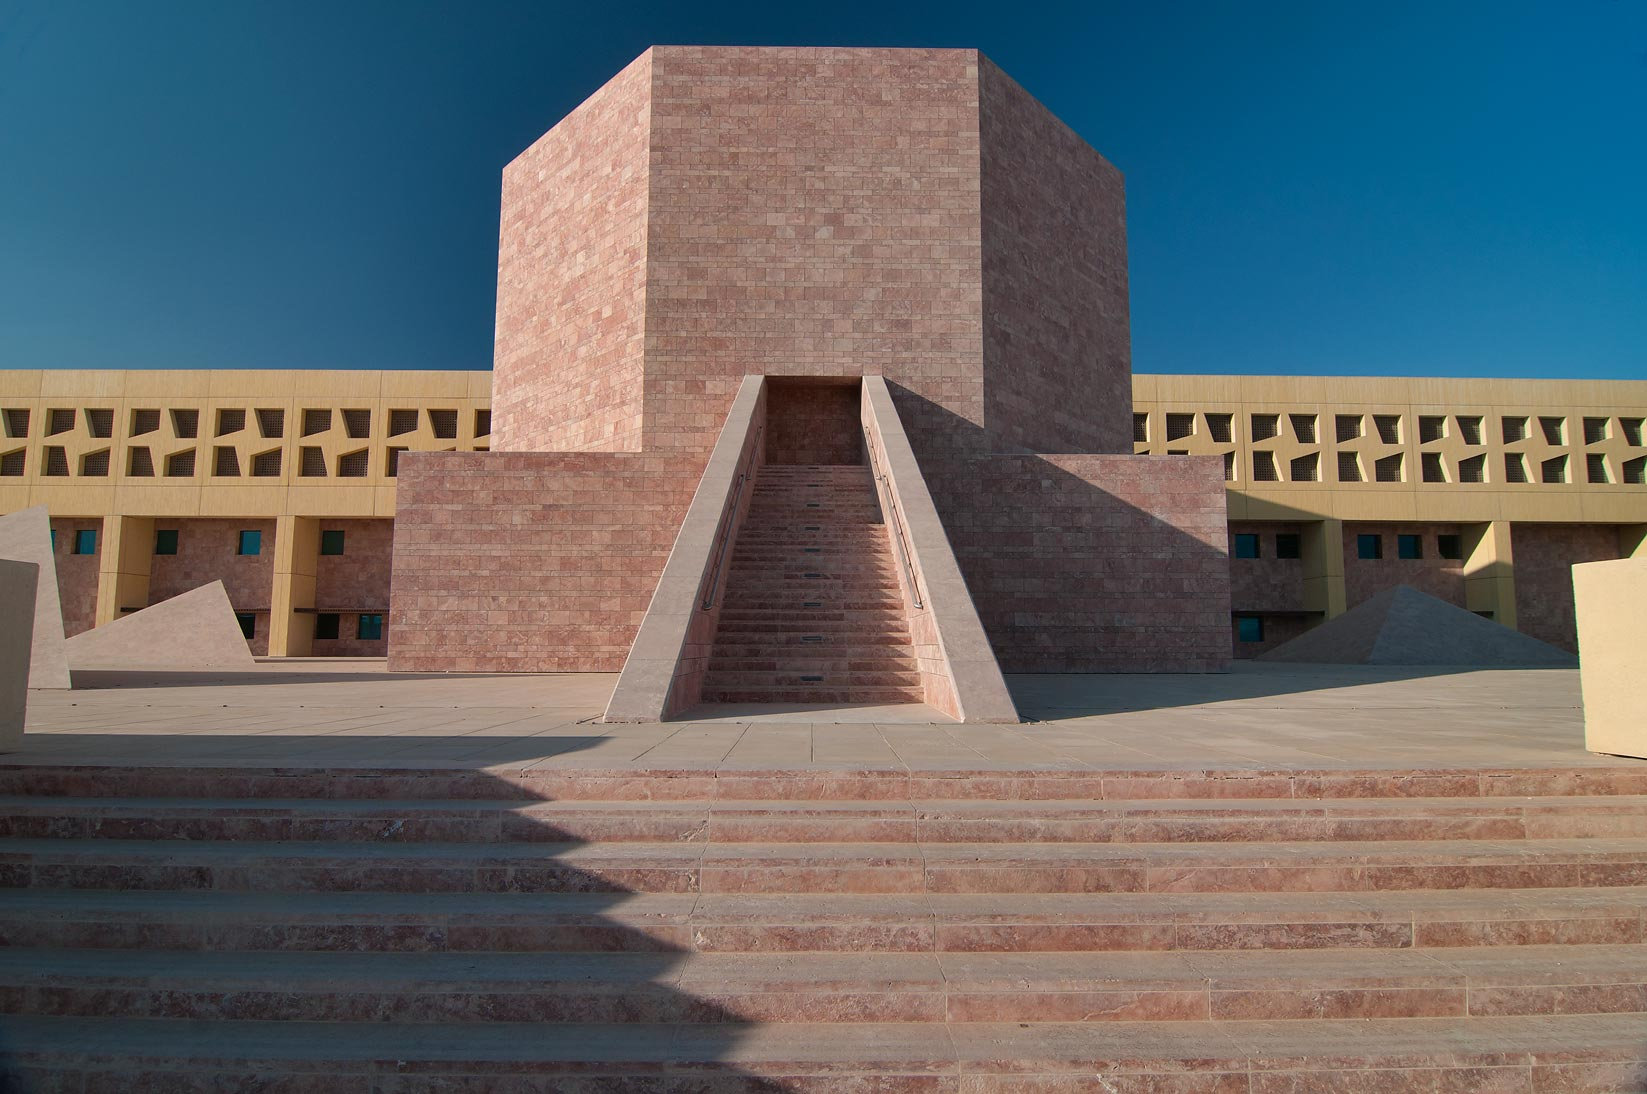 TAMUQ Main Lecture Hall 238 (Texas A&M...in Education City campus. Doha, Qatar